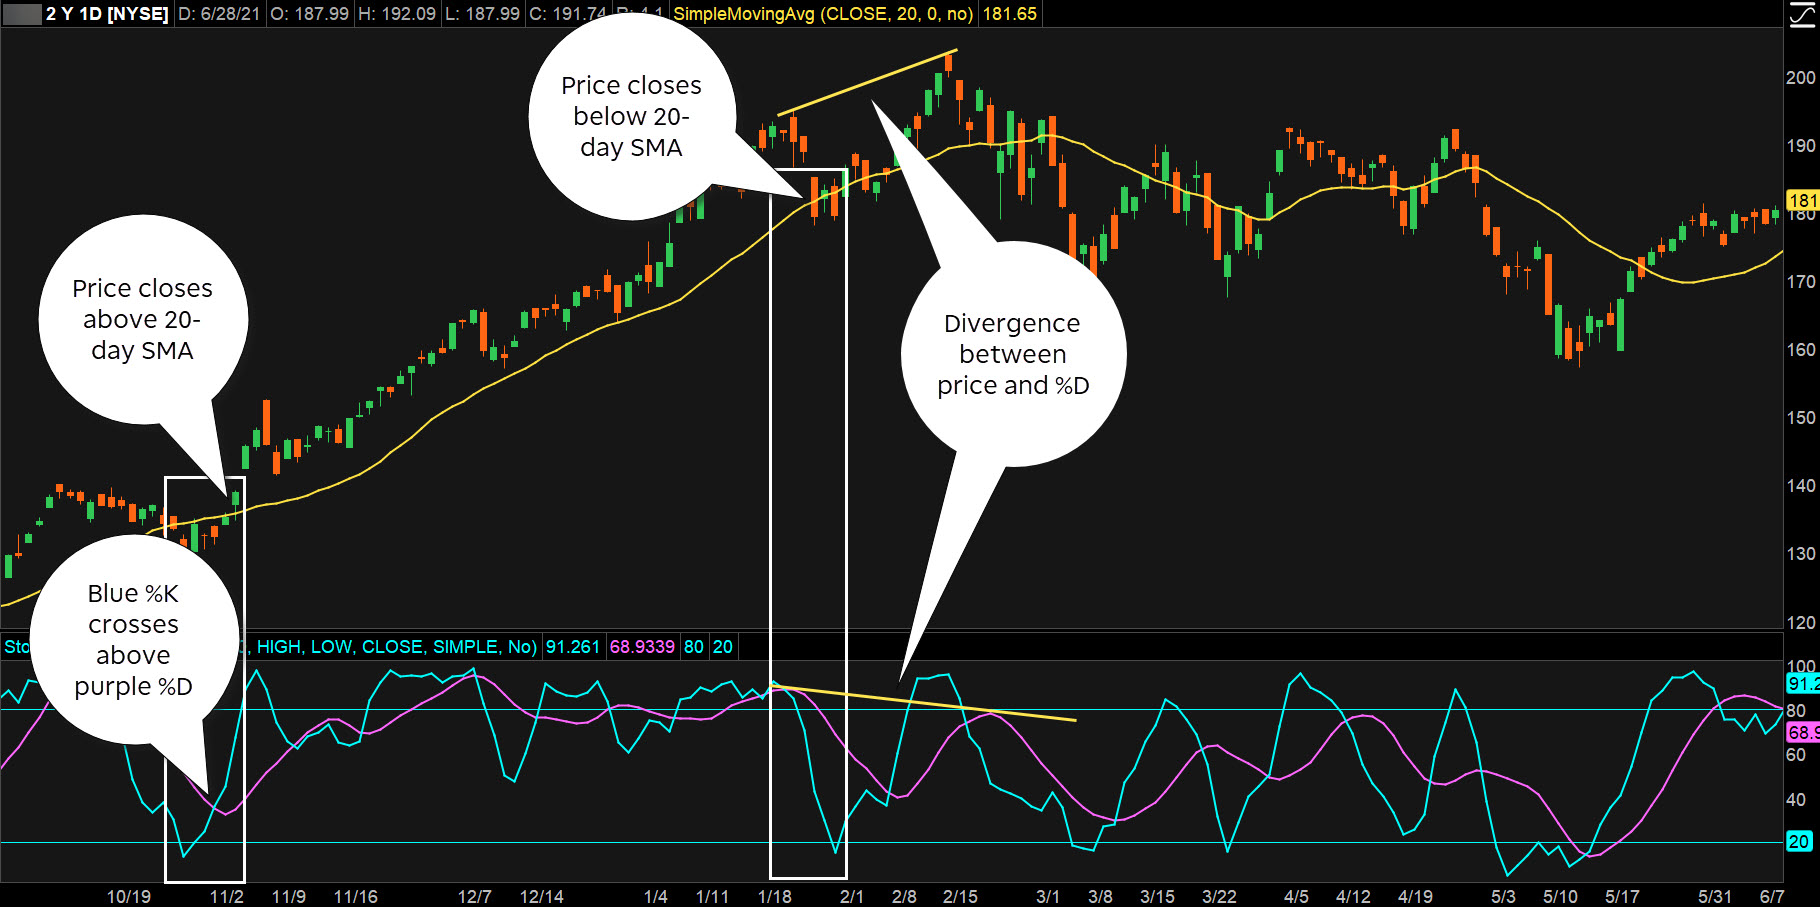 thinkorswim chart displaying stochastic oscillator overbought oversold and divergences